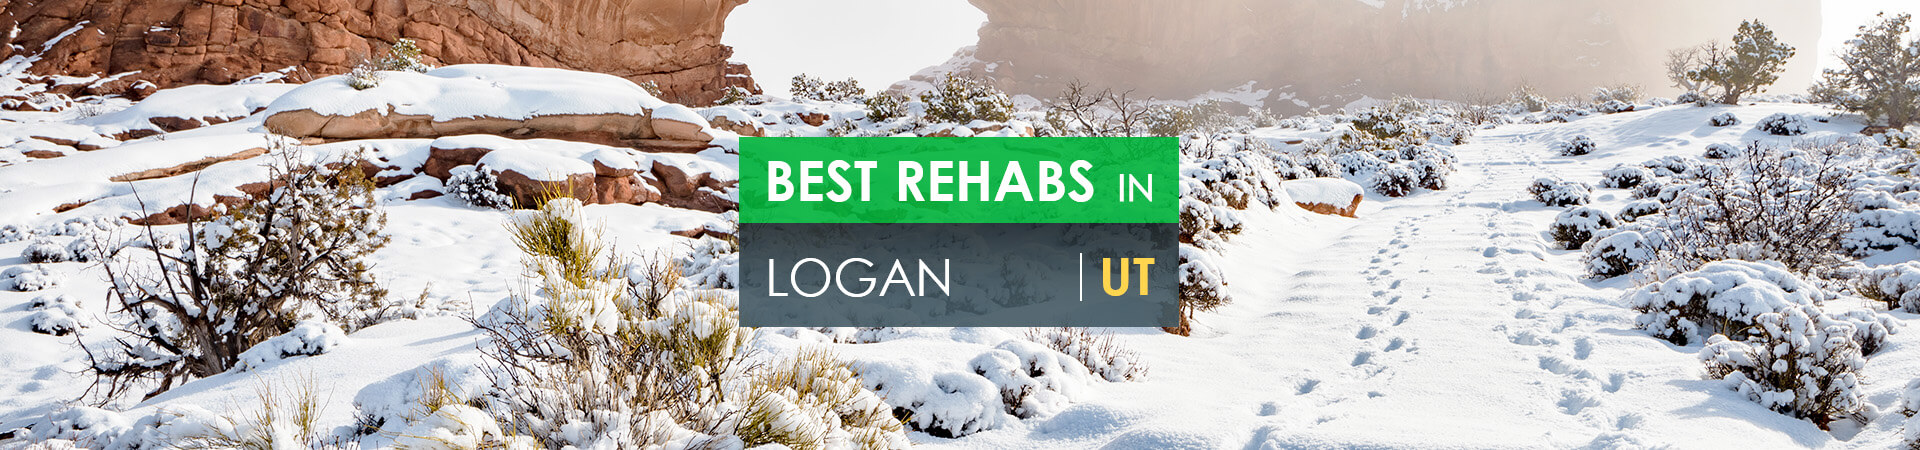 Best rehabs in Logan, UT